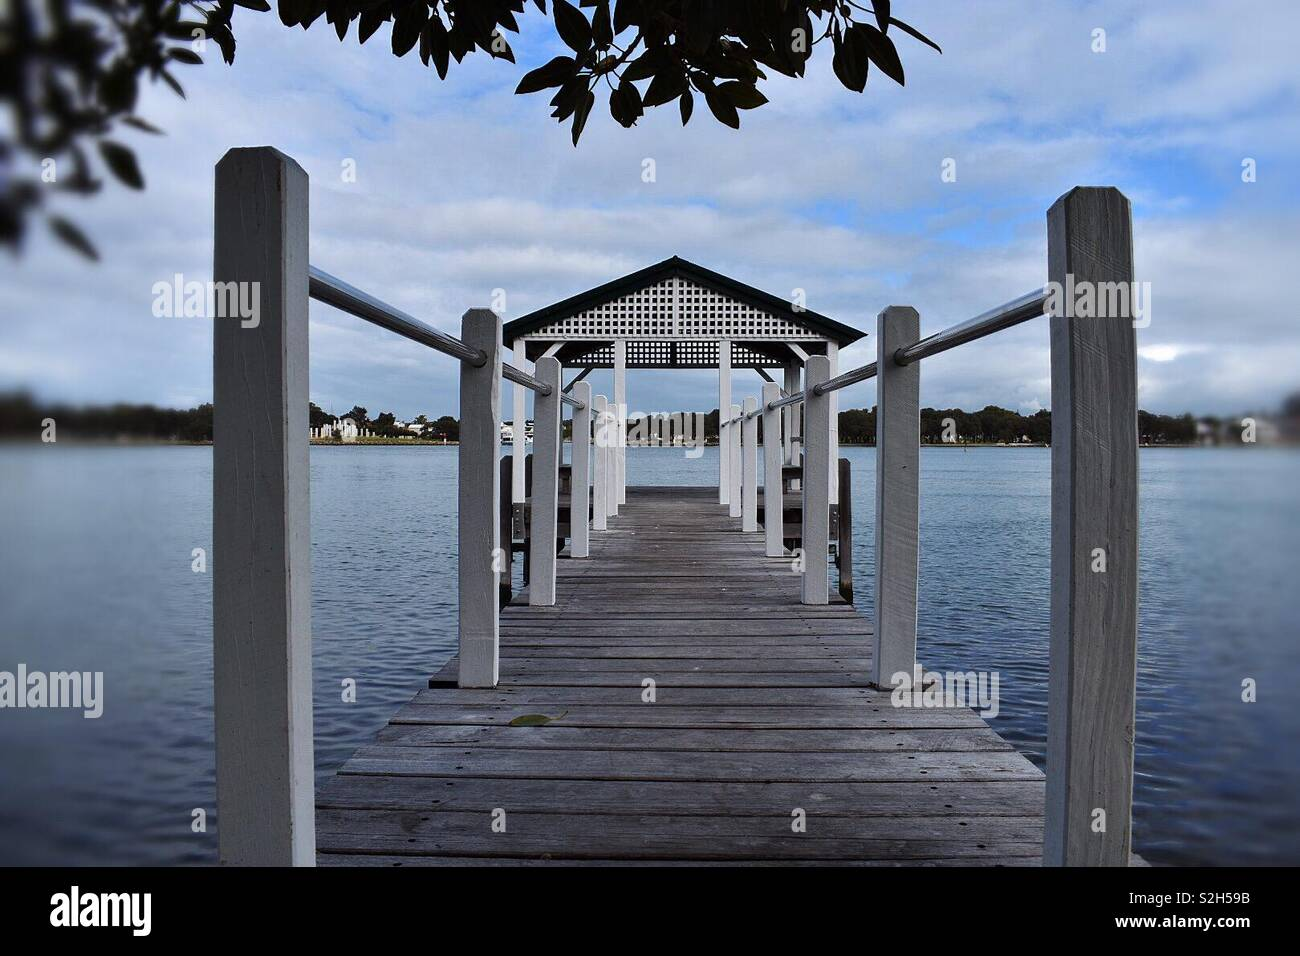 Mid shot of an old jetty located on the boarder of the Mandurah Estuary, Western Australia. - Stock Image